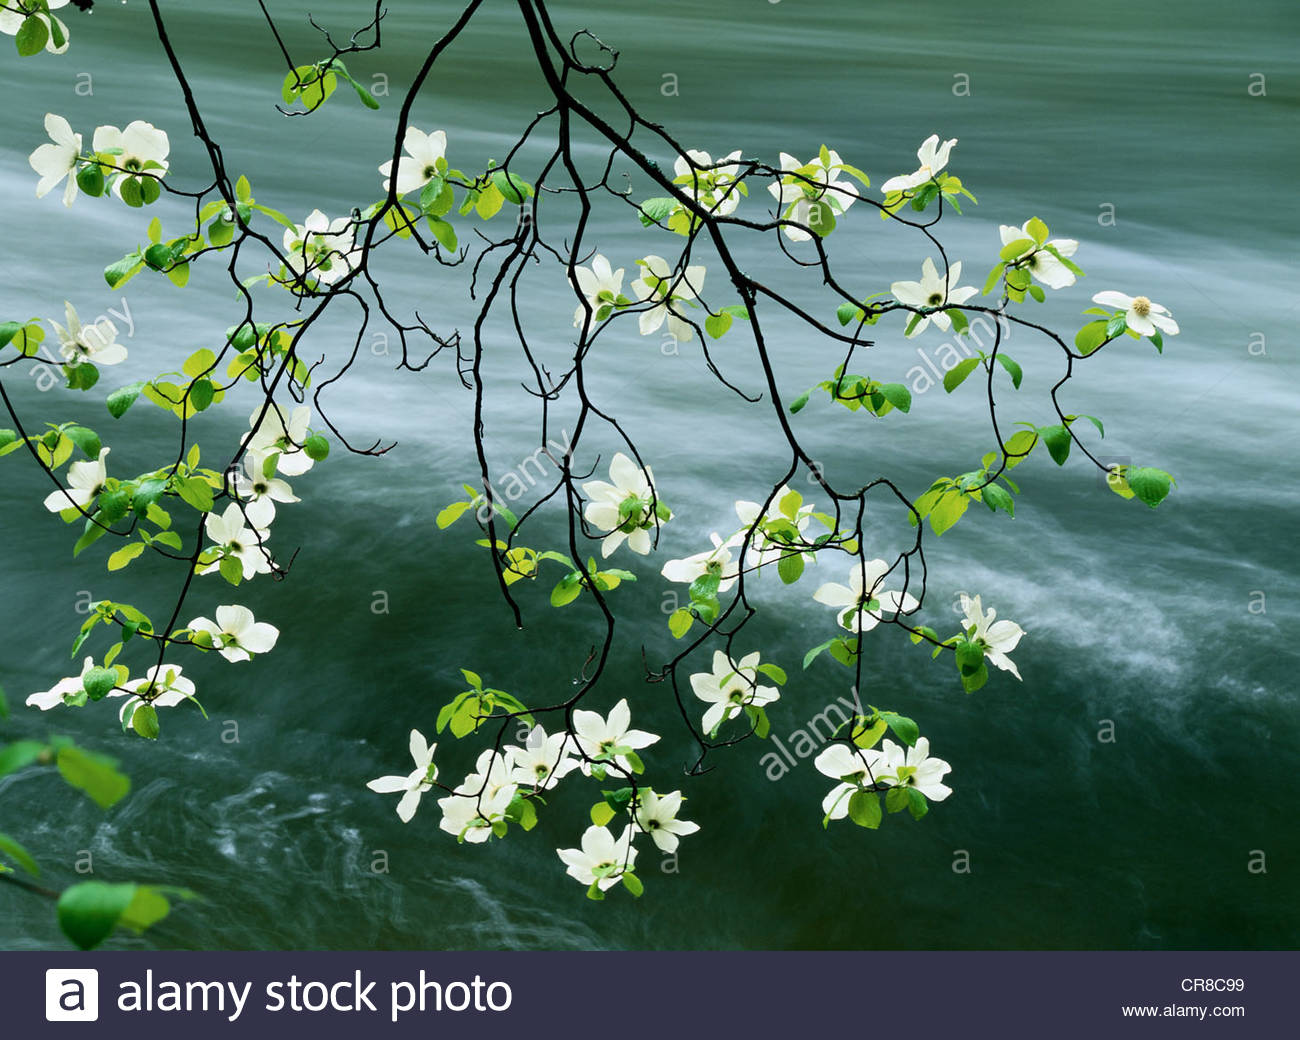 A branch of a dogwood in bloom hangs over the Merced River in Yosemite National Park, California. - Stock Image